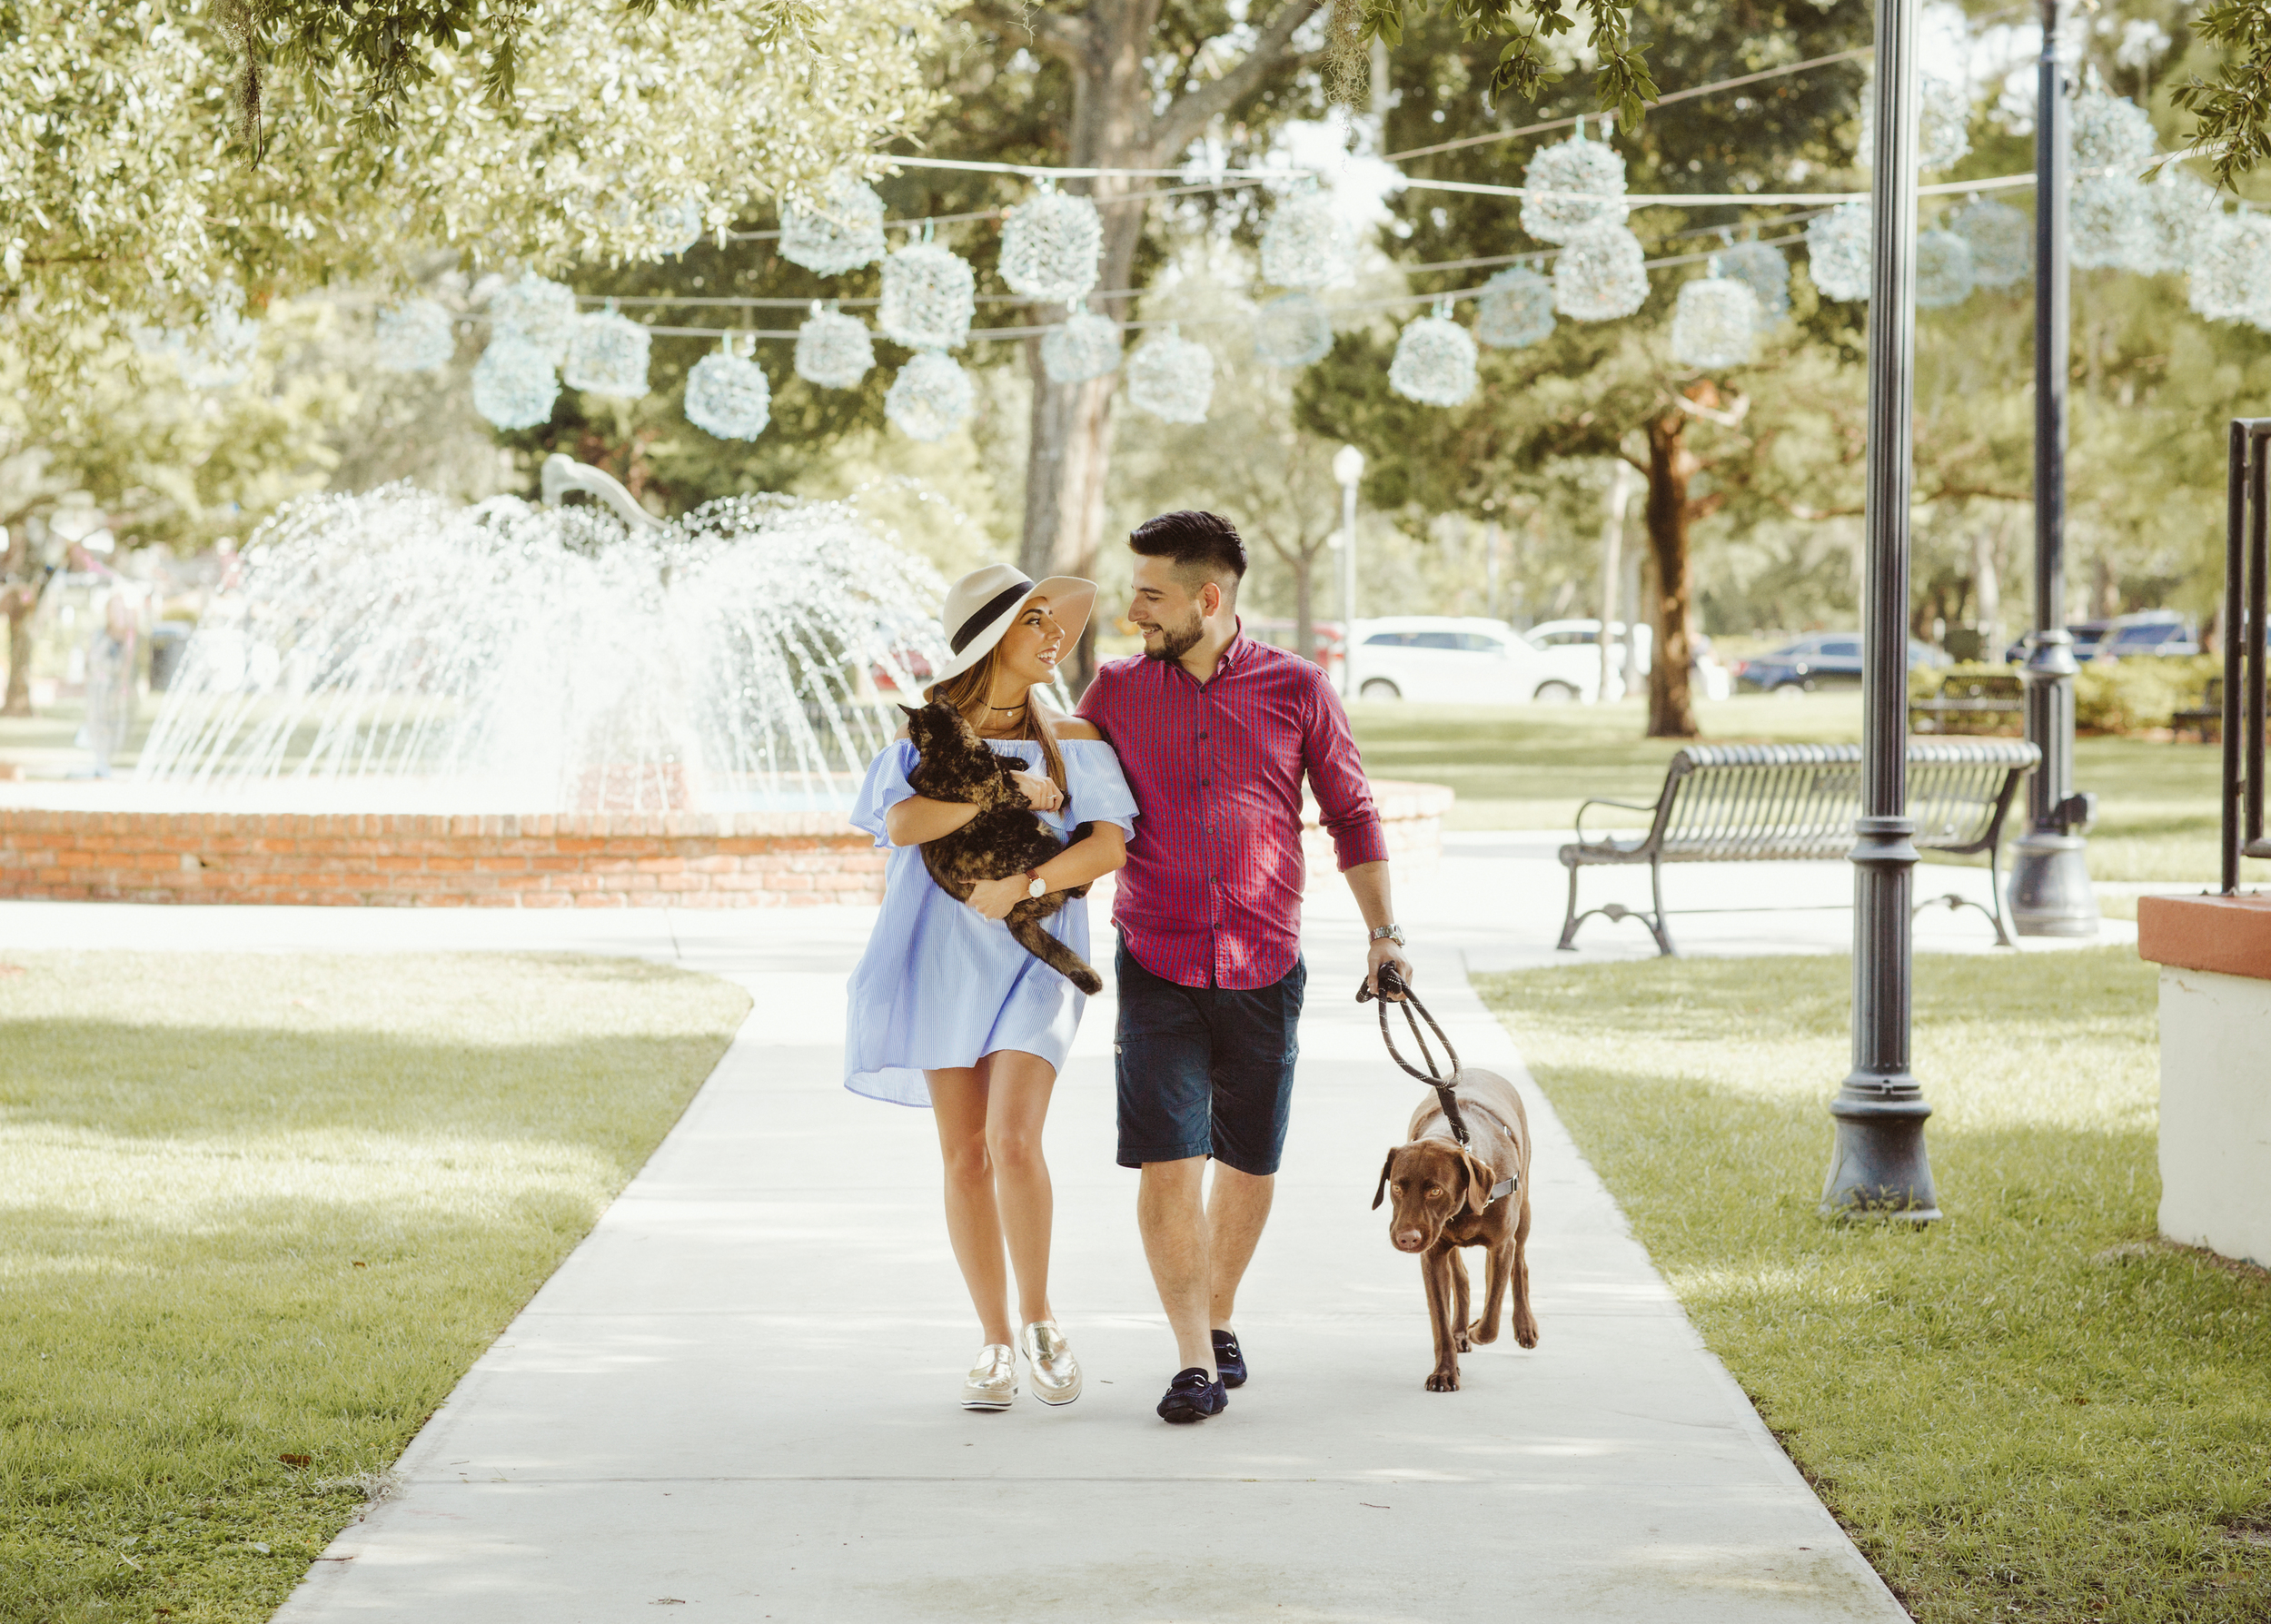 Engagement Session with pets | vanessaboy.com